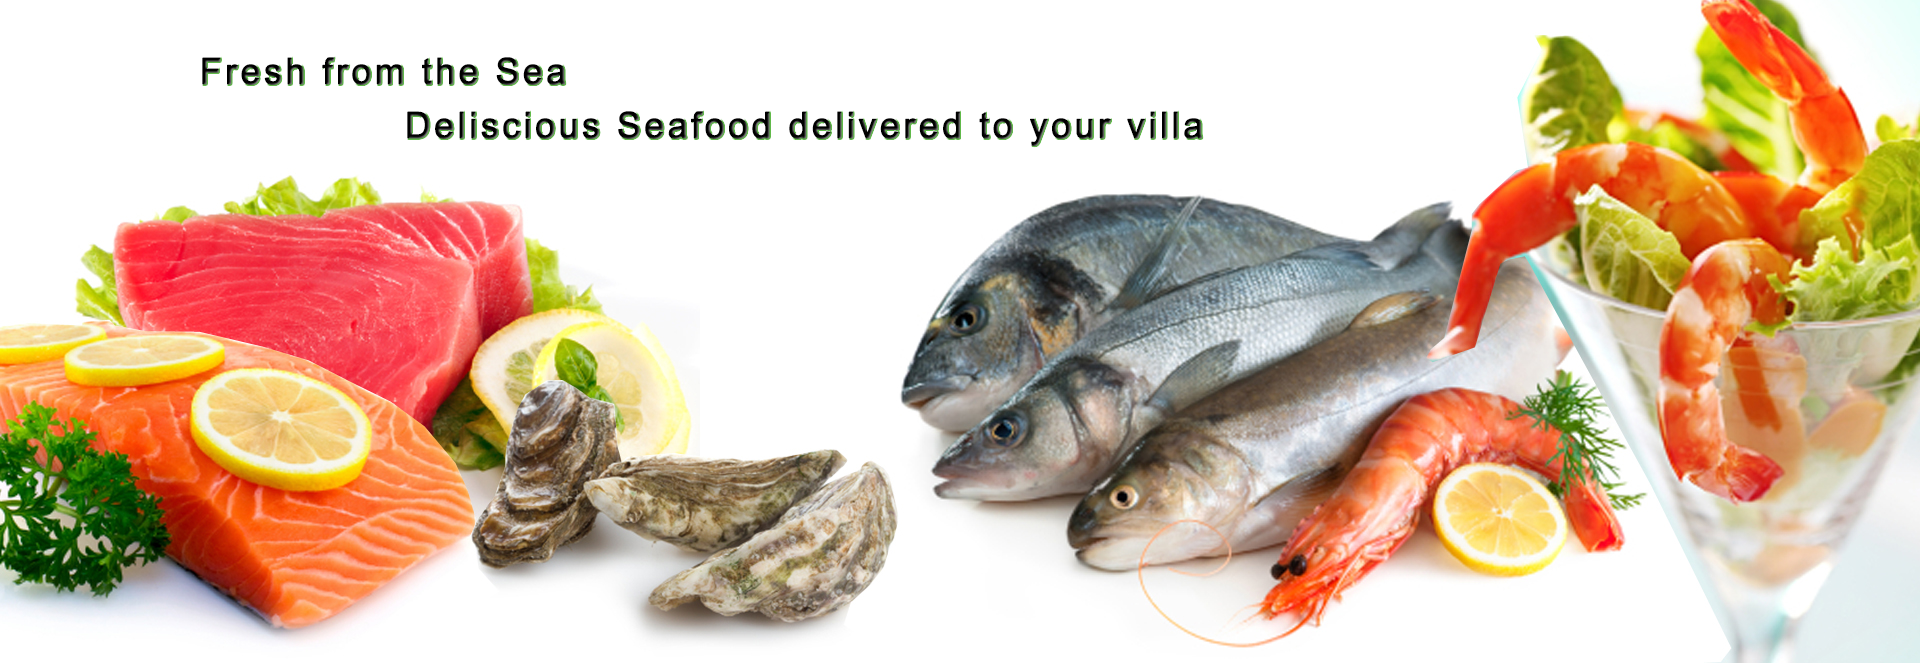 Seafood delivered to your villa